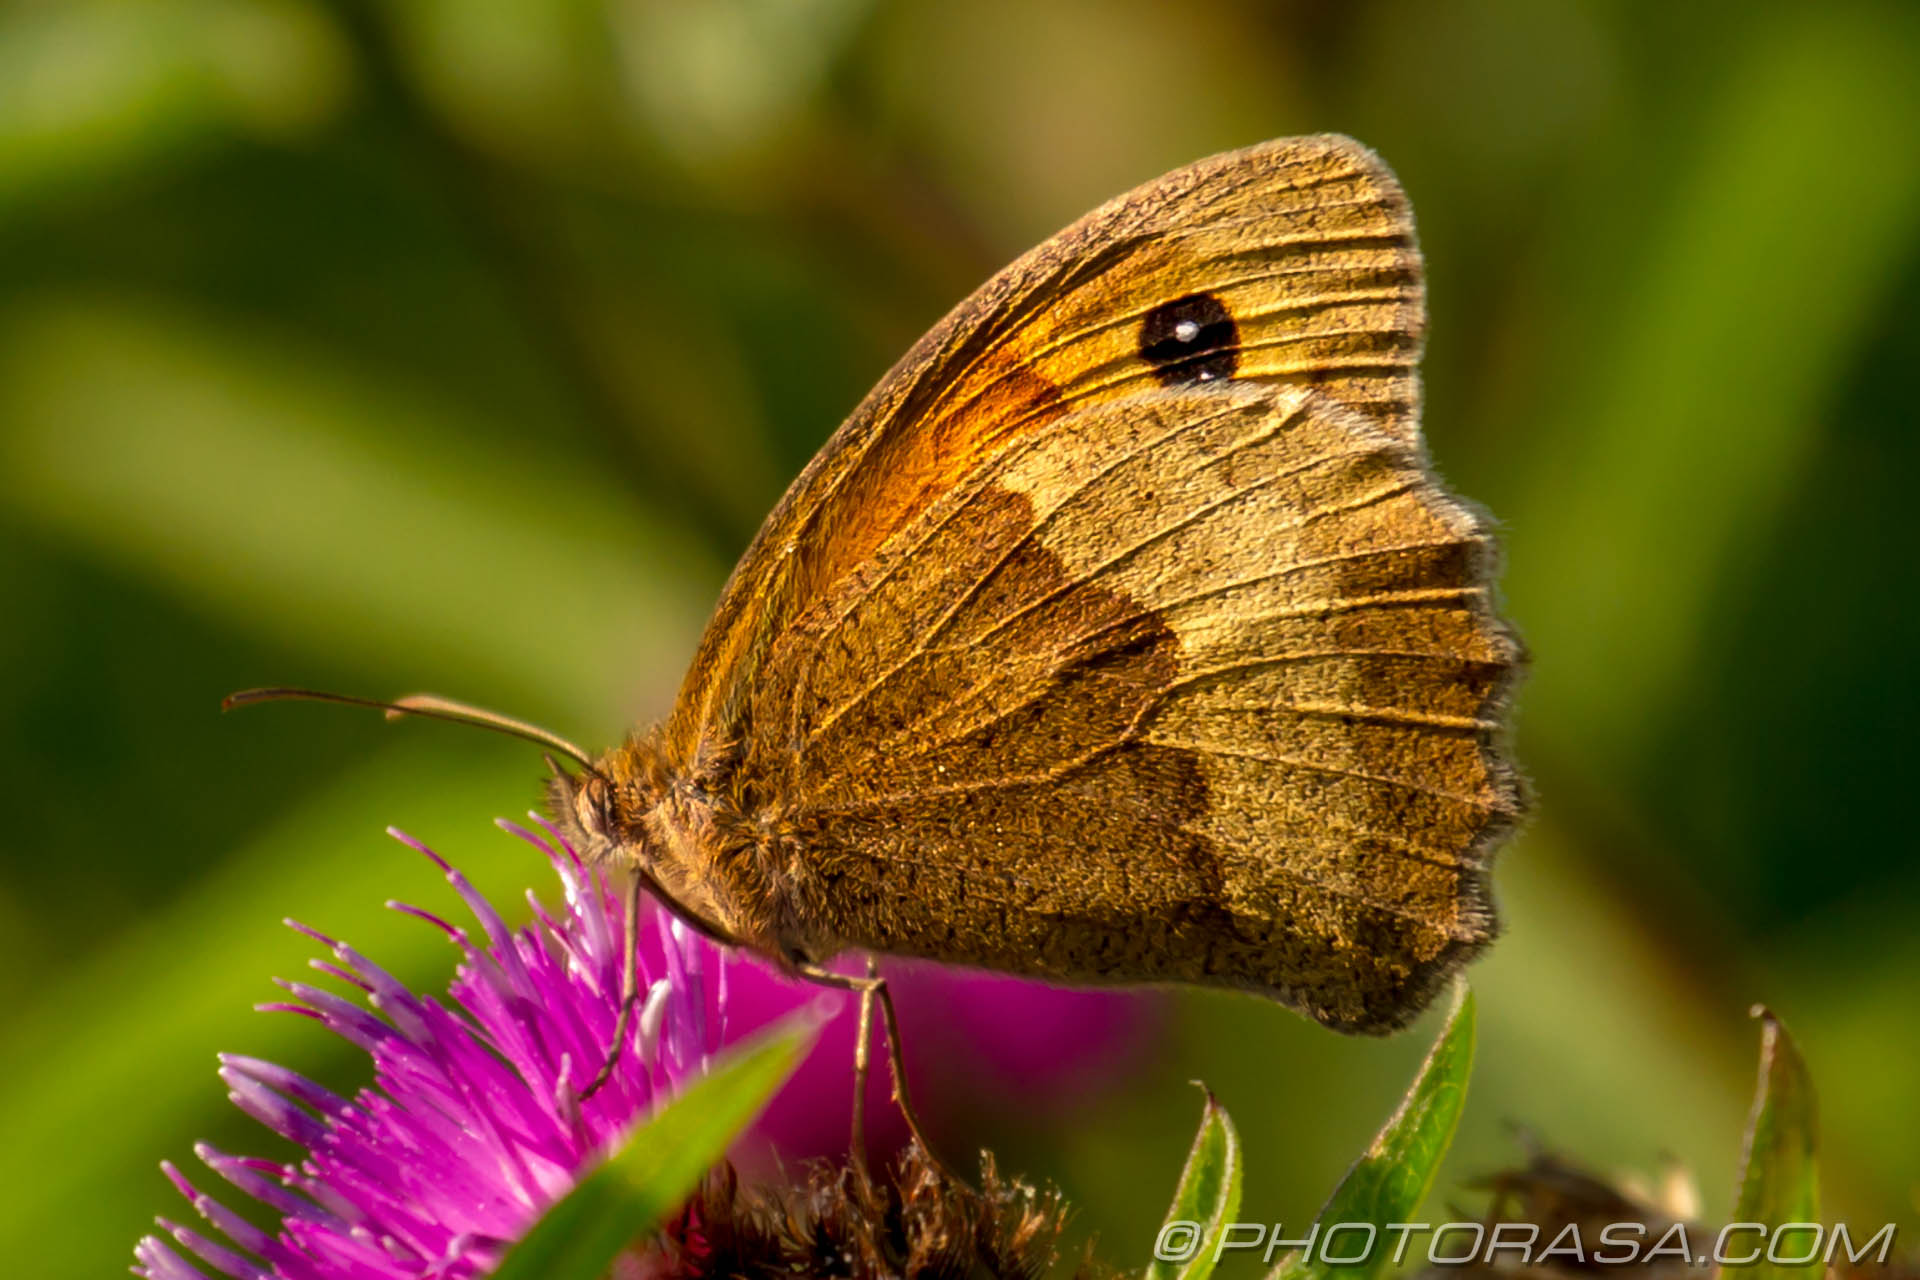 http://photorasa.com/meadow-brown-butterfly/meadow-brown-wing-membranes/